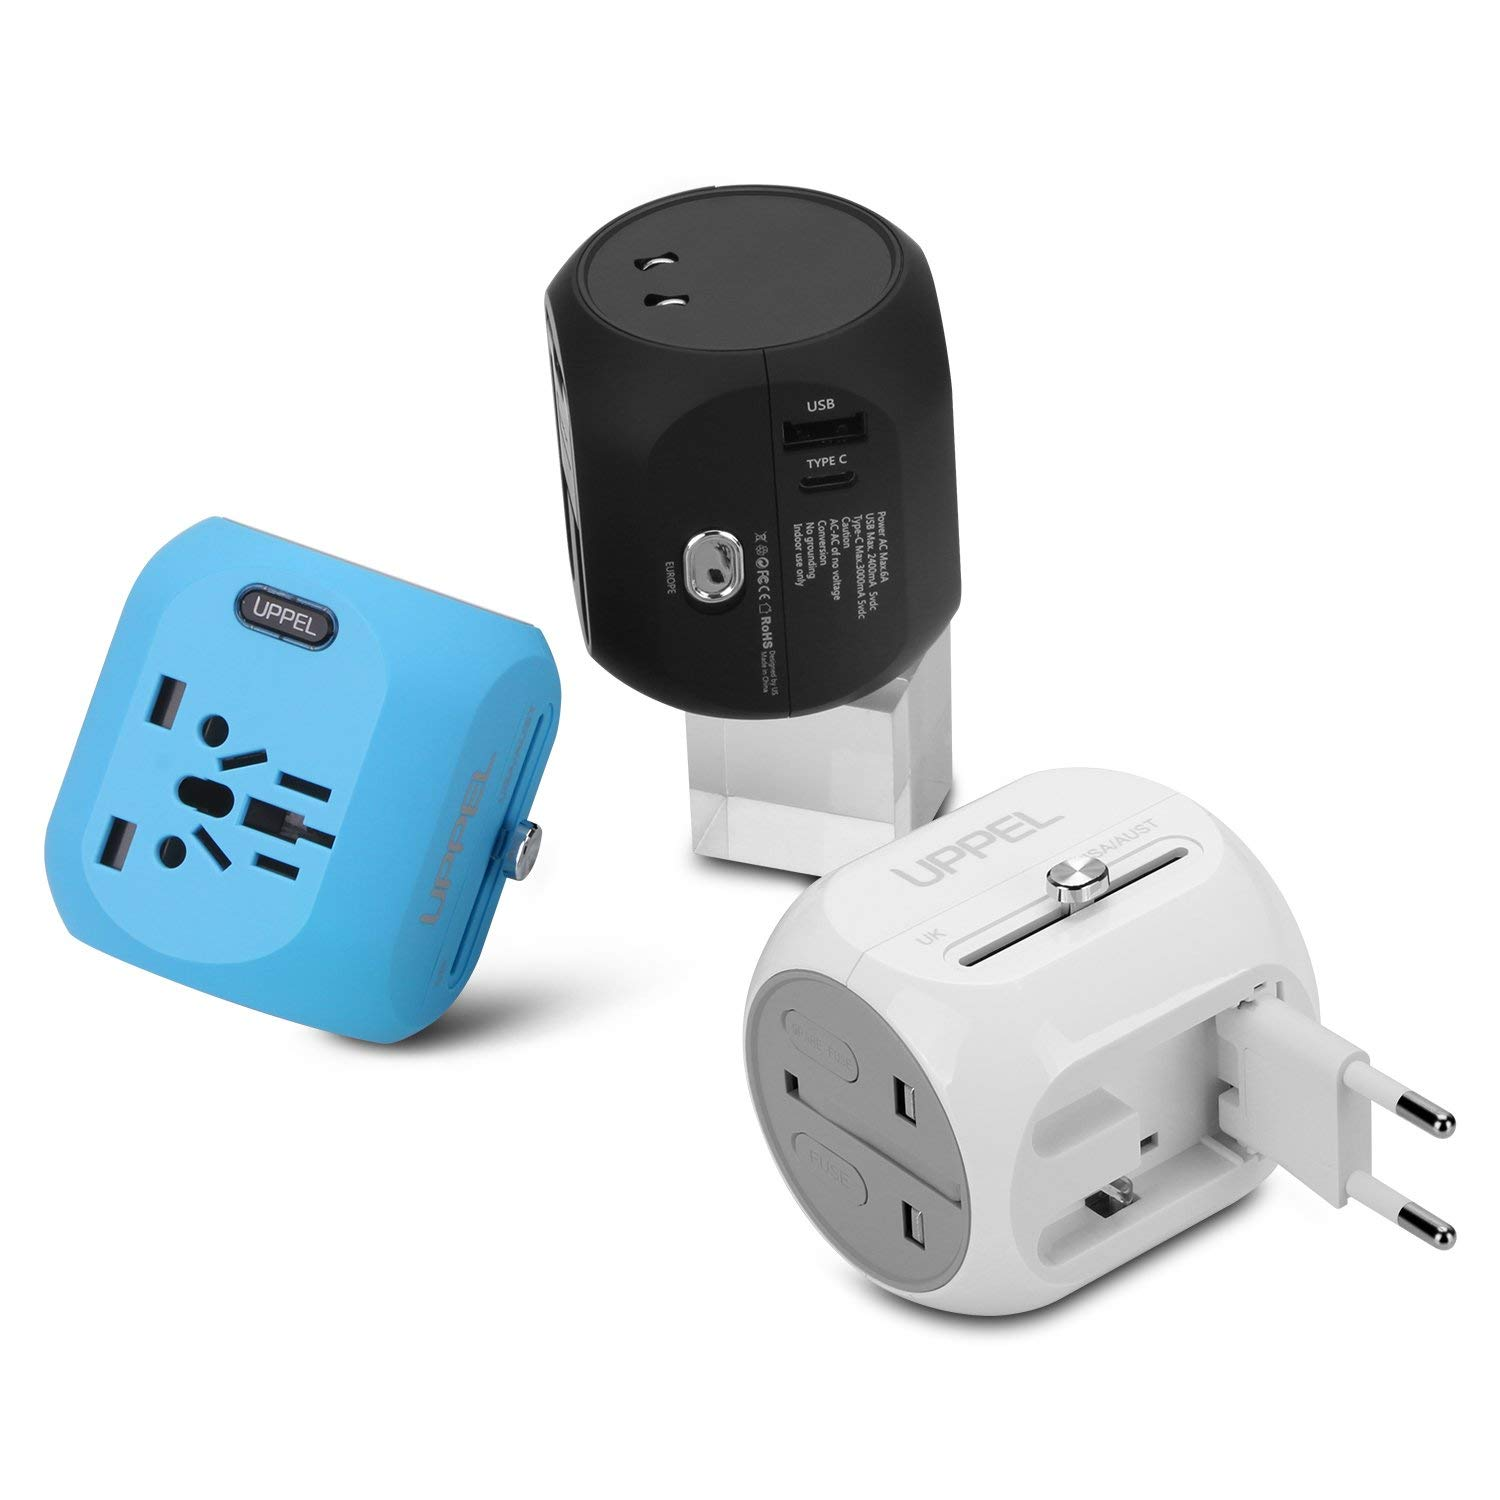 International Power Adapter, UPPEL Travel Adapte European Adapter Wall Charger Power with USB/Type-C Port Support 100V-240V for US,AU,Asia,Europe,UK Plug Adapters Compatible (Black+Blue+White) by UPPEL